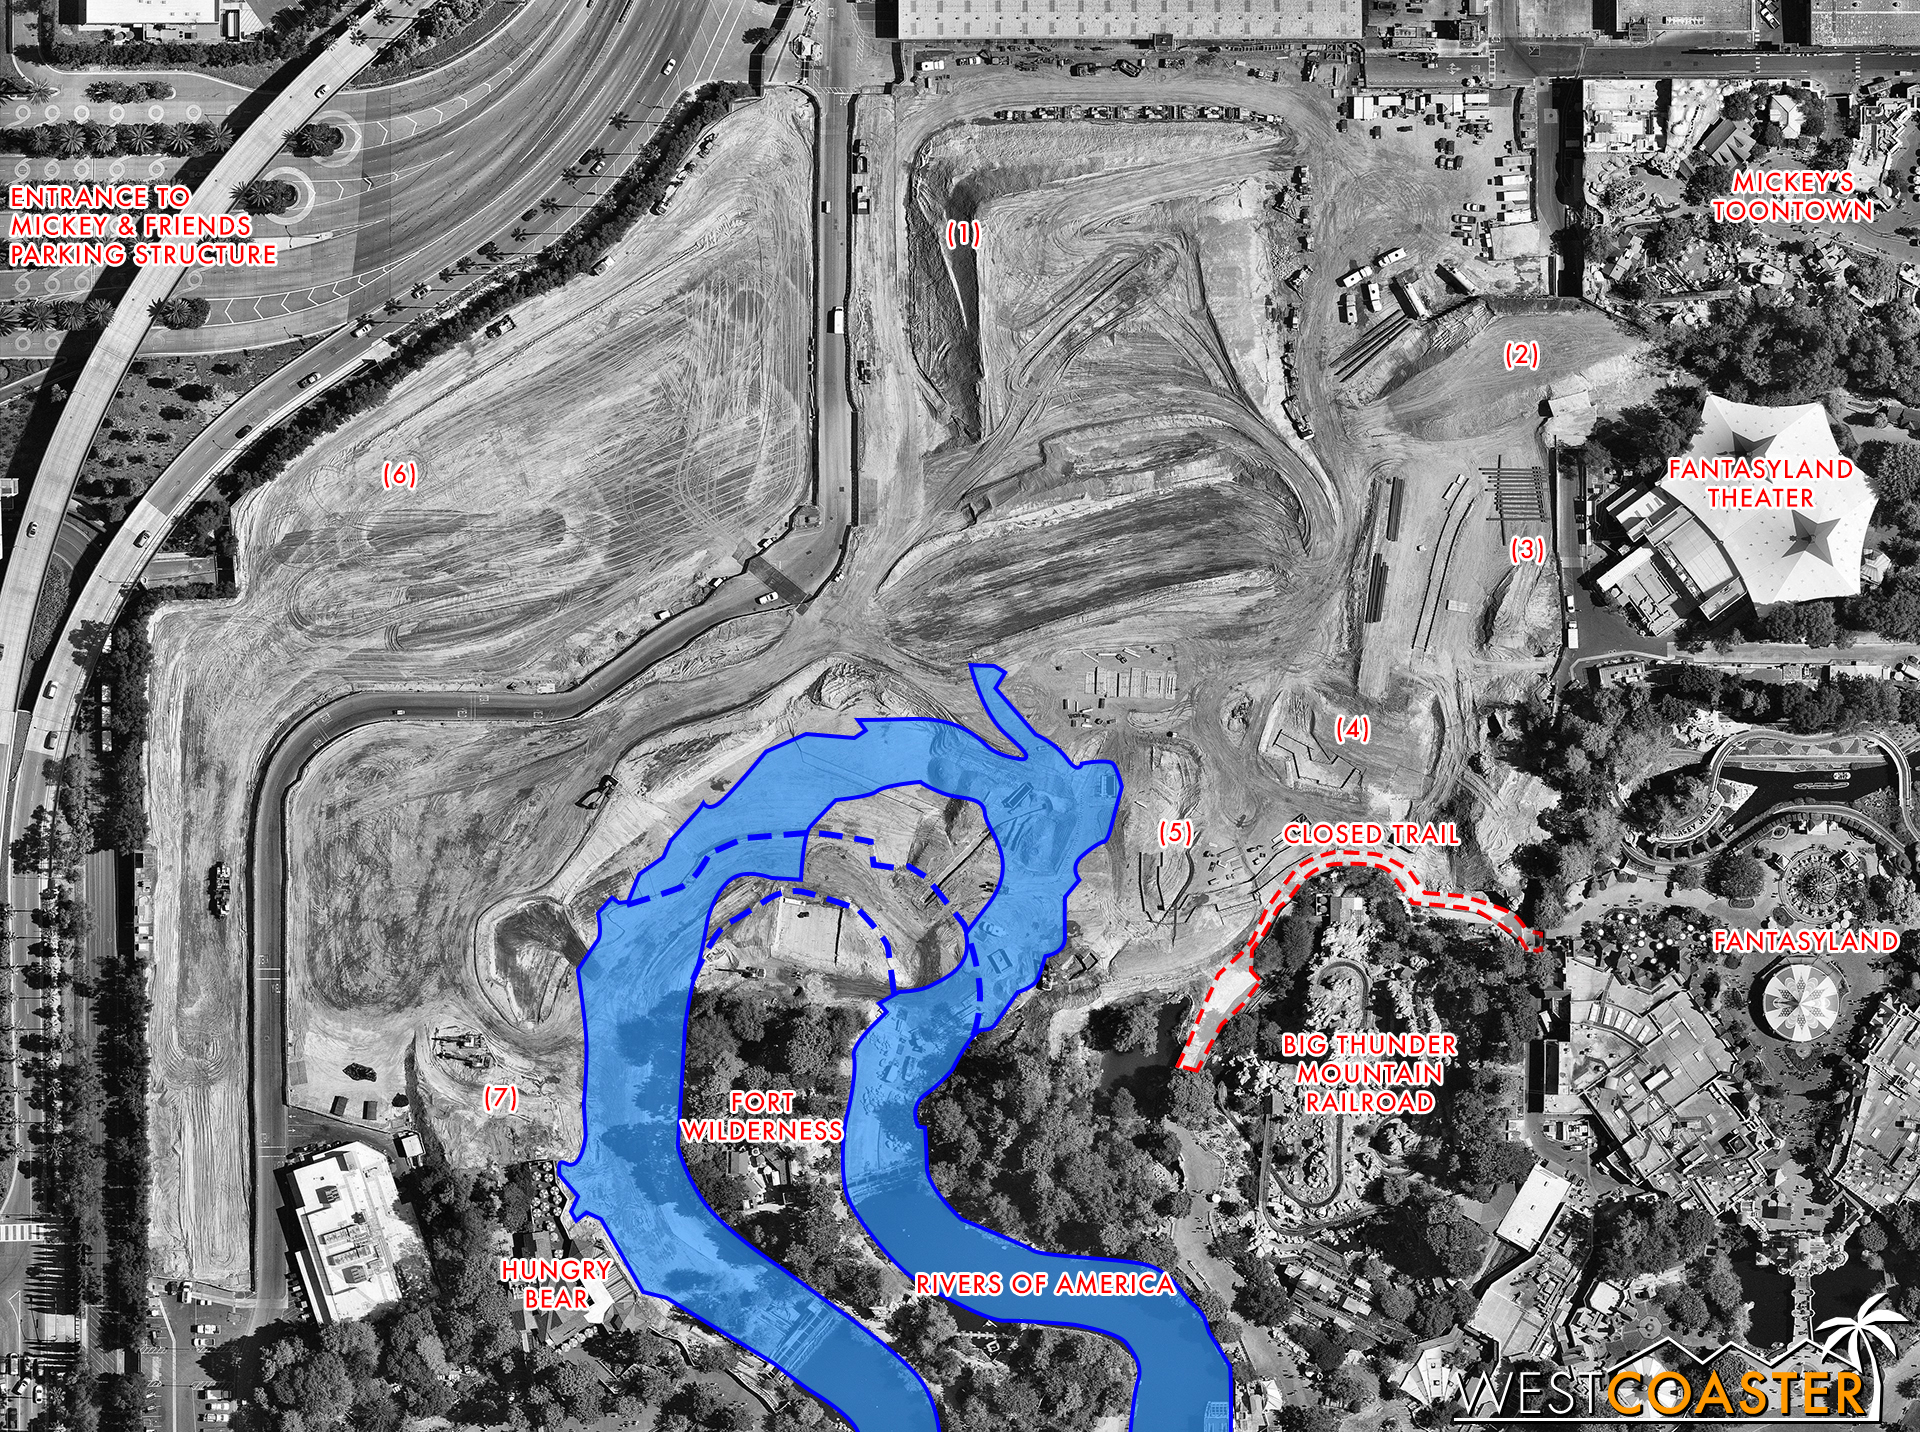 In an effort to better illustrate things, I've gone ahead and diagrammed over the Blog Mickey photo that sort of went viral last week.  The numbers will be referenced in the photos below to give an idea of what is where, and I also traced over the current Rivers of America layout and what it appears to be adjusting to based on the grading.  This is, of course, nothing official; just my own analysis.